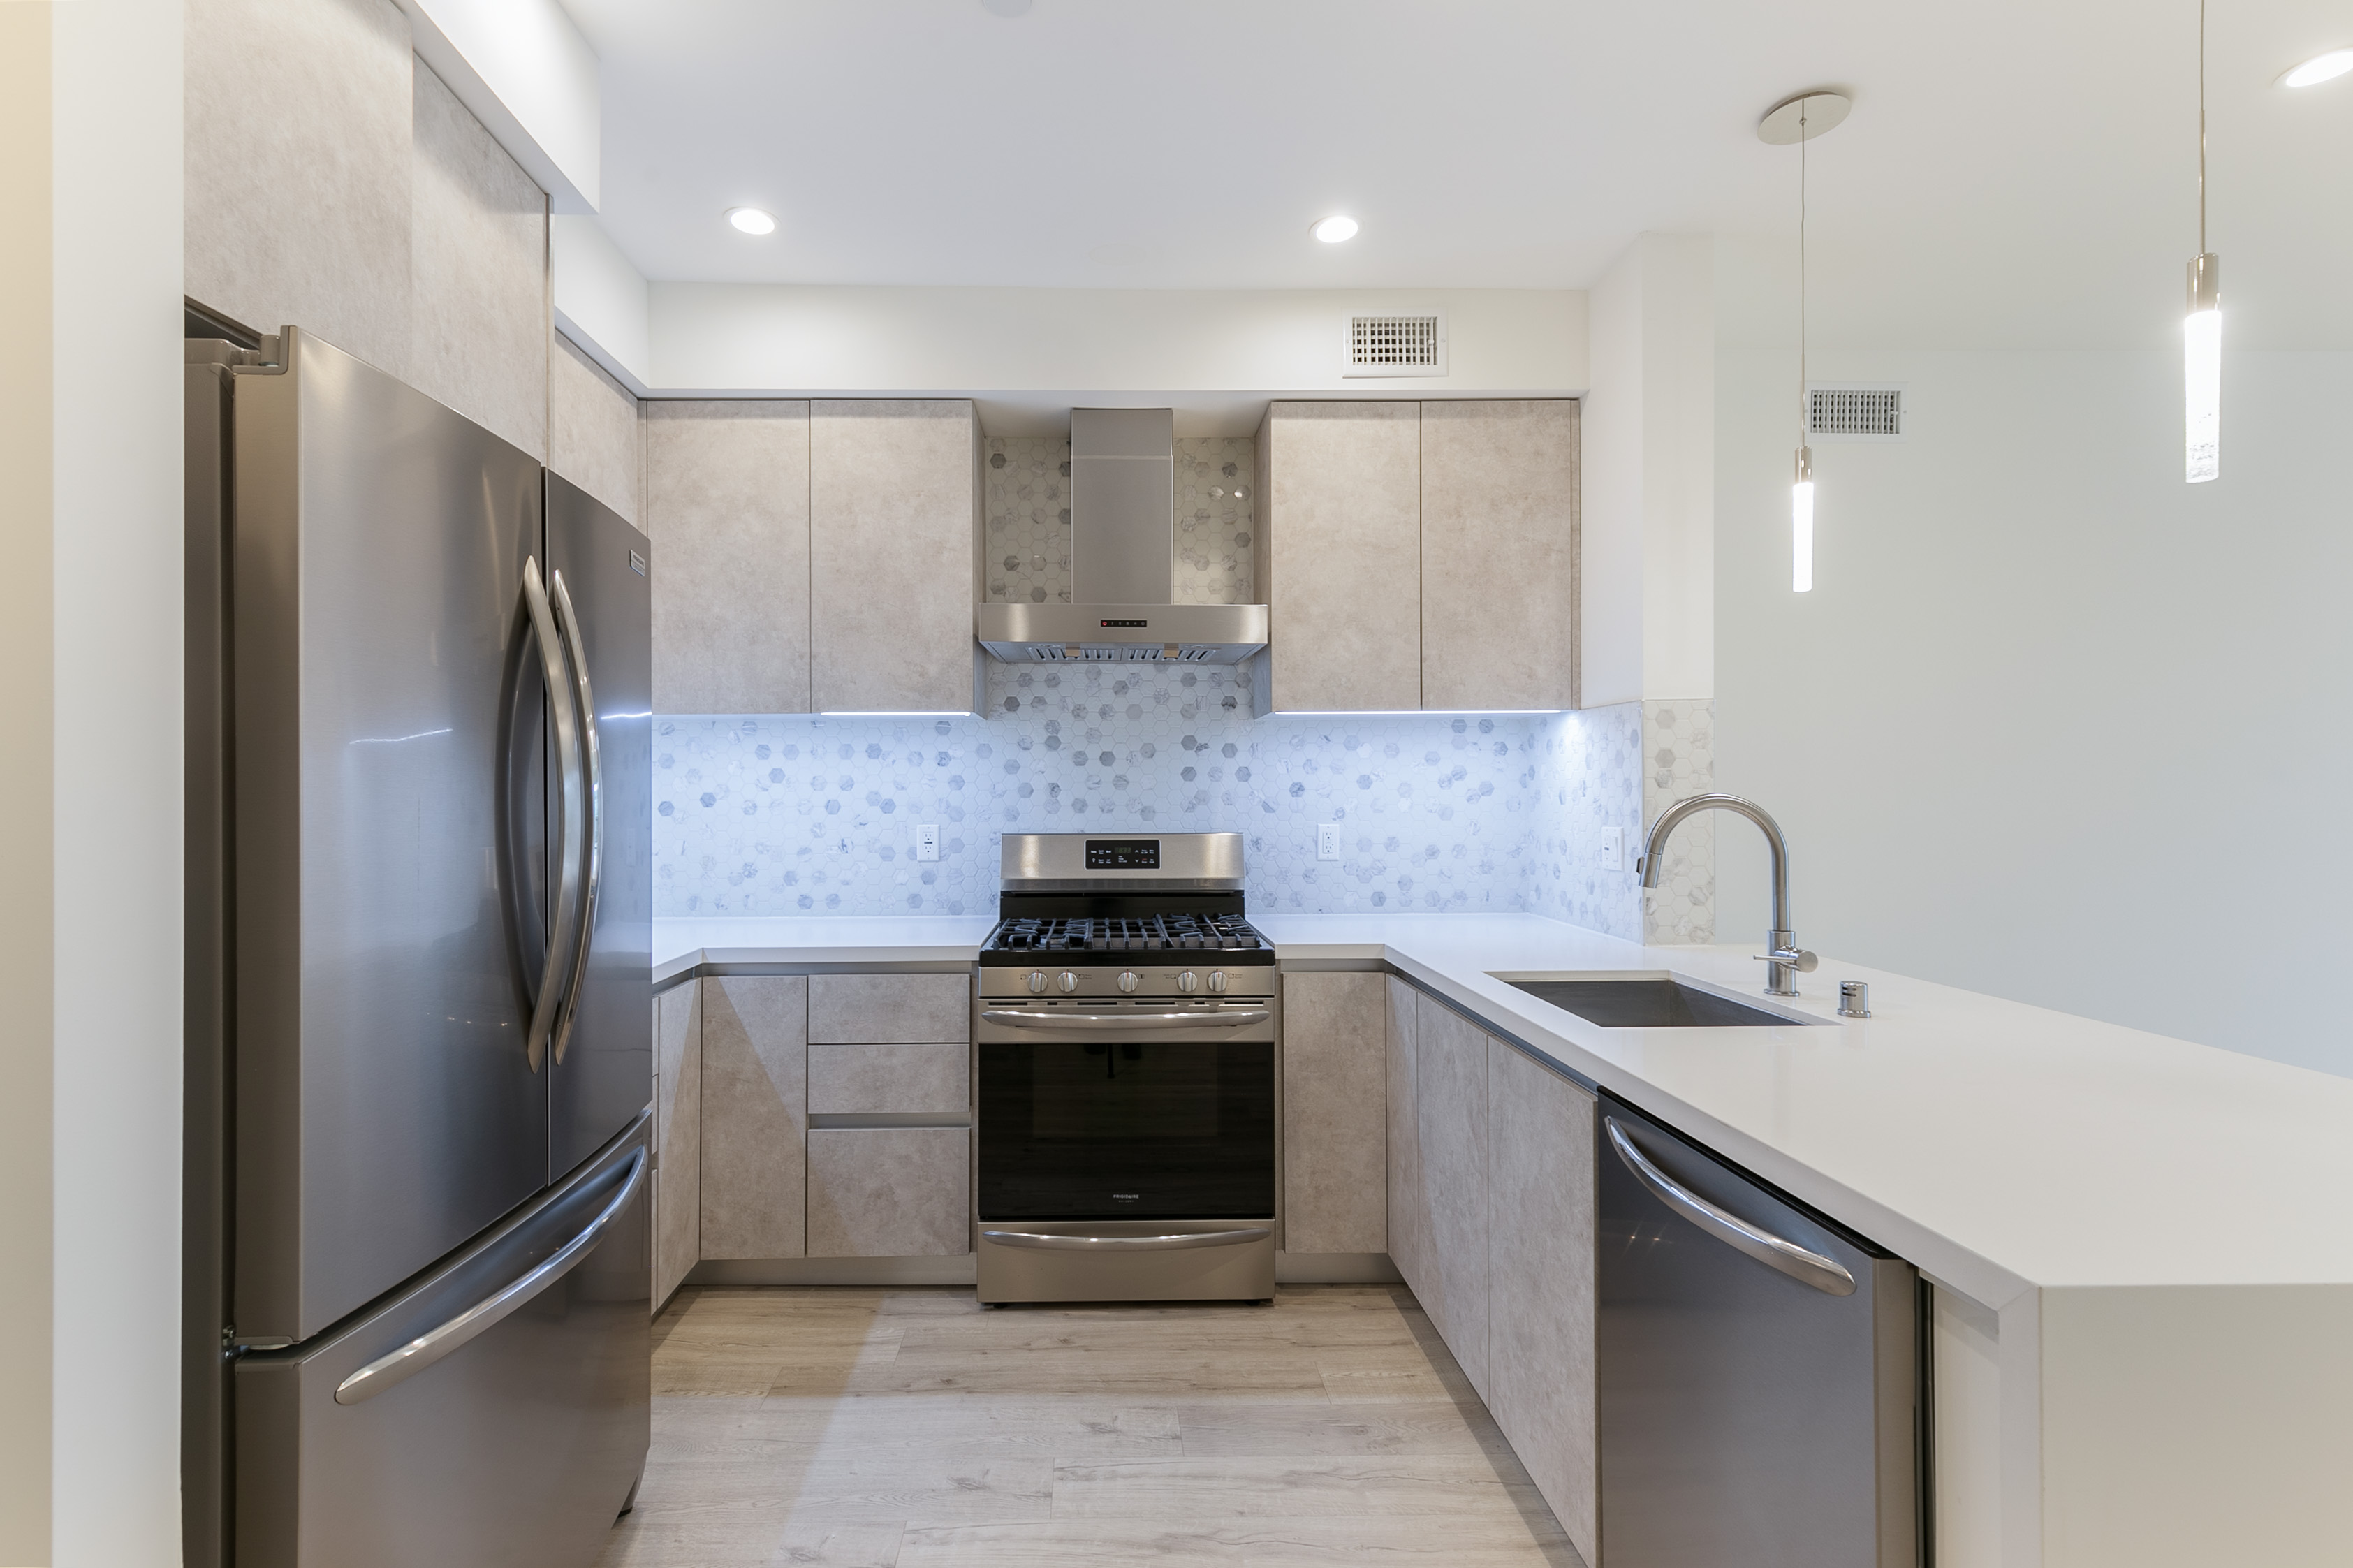 SOPHISTICATED 2BR/ 2BA W/ LARGE PRIVATE BALCONY, BUILDING GYM, & OUTDOOR COURTYARD!